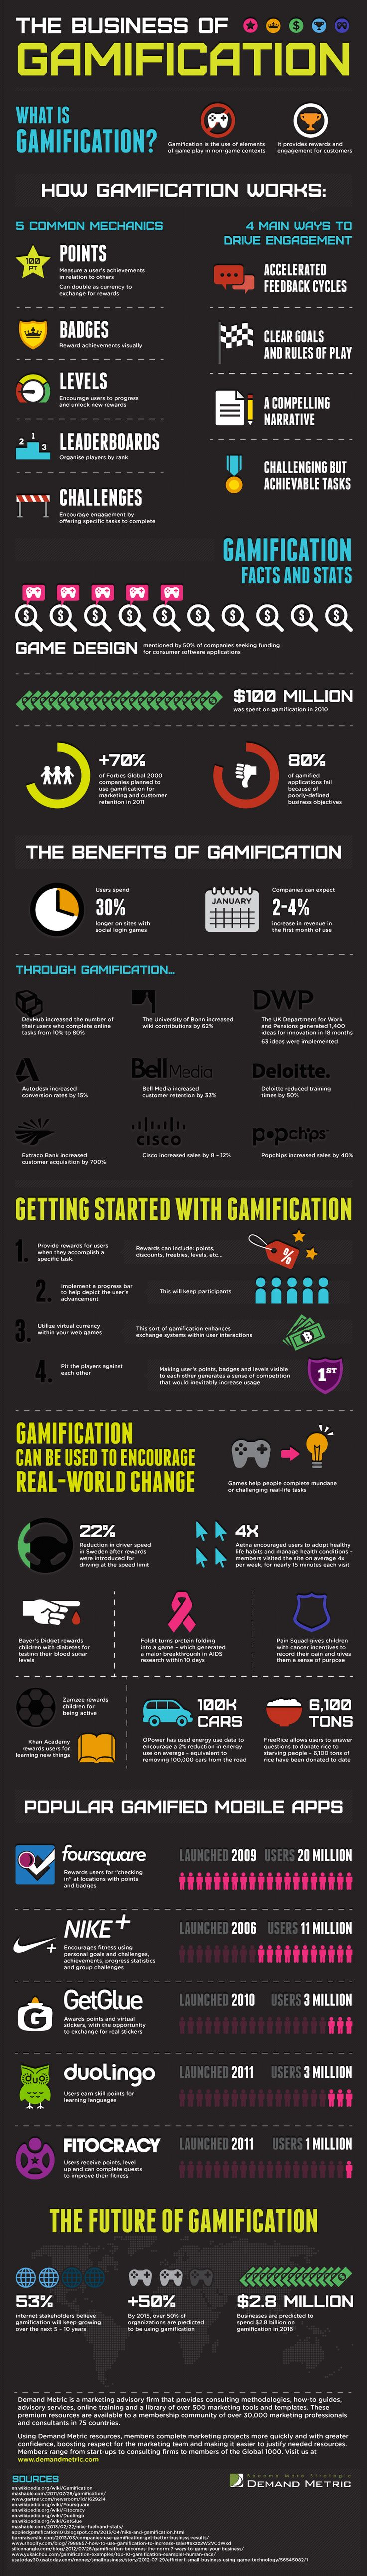 The Business of Gamification image The business of gamification infographic 1